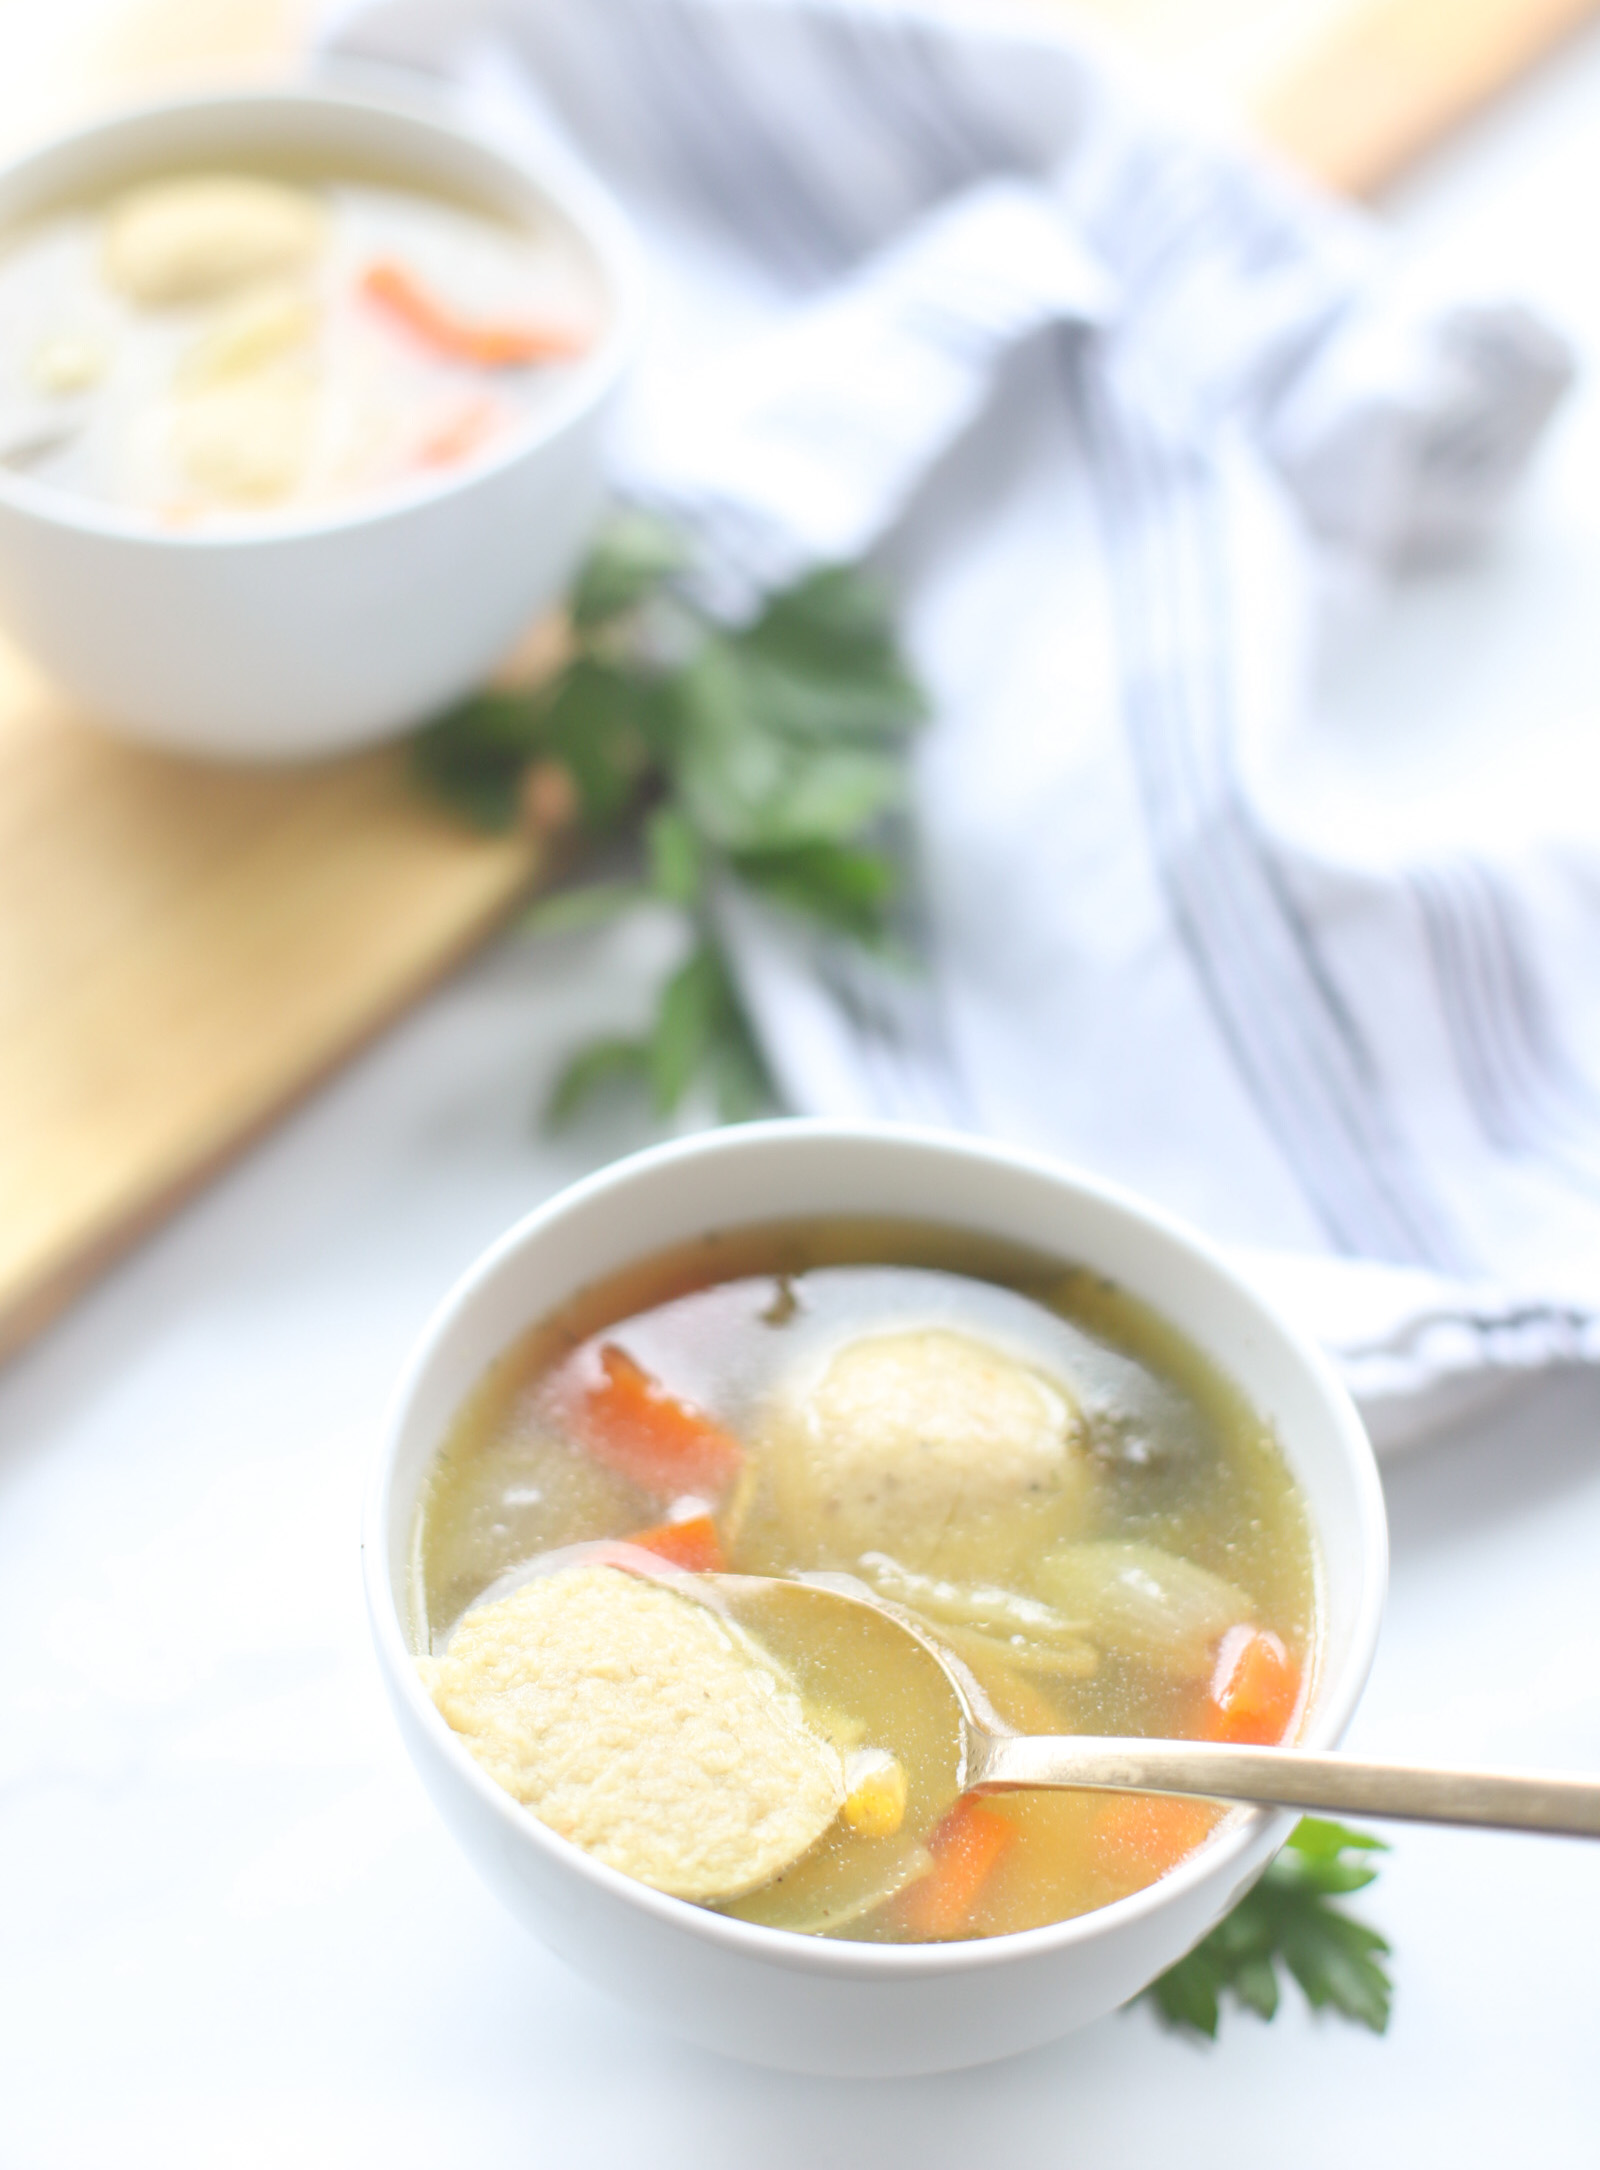 Bubby's Homemade Matzo Ball Soup - Our Family Favorite Classic Jewish Chicken Stock with the Best Matzoh Balls | @glitterinclexi | GLITTERINC.COM